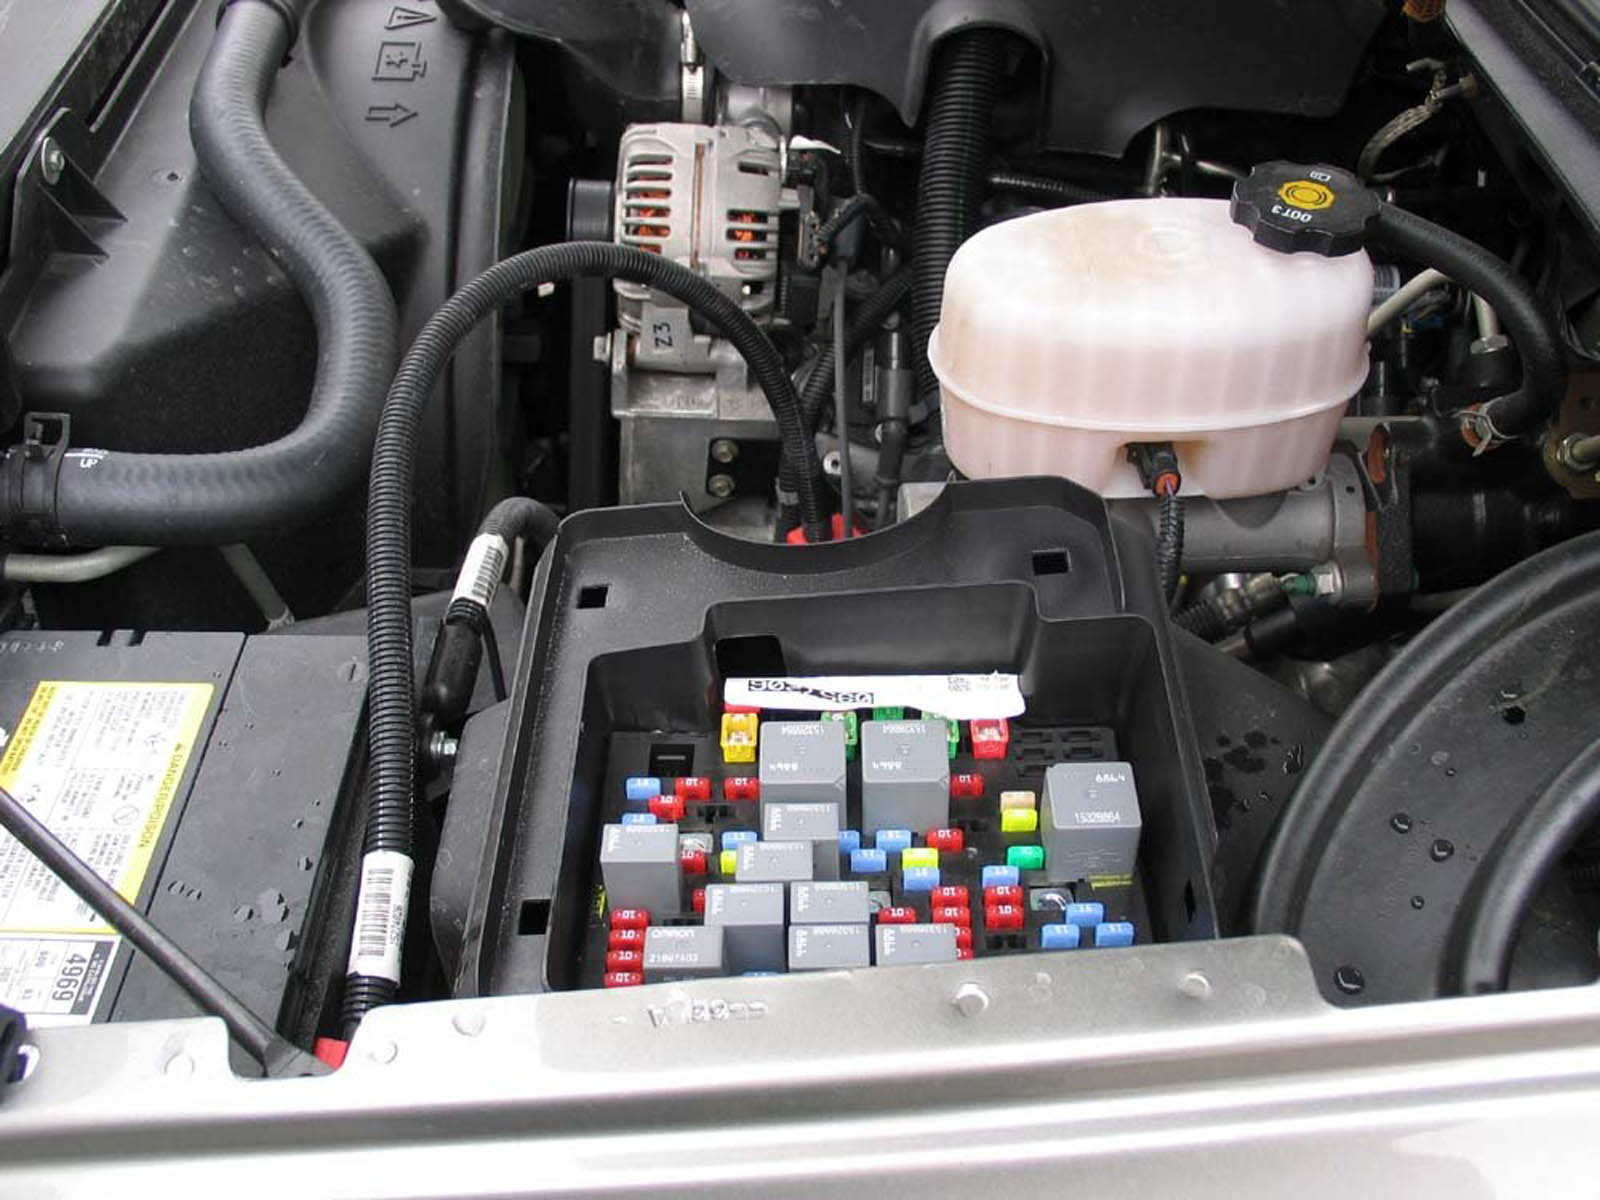 MMMay 27 Fuse Box 04 69845 chevrolet silverado gmt800 1999 2006 fuse box diagram chevroletforum 2003 chevy silverado fuse box at suagrazia.org